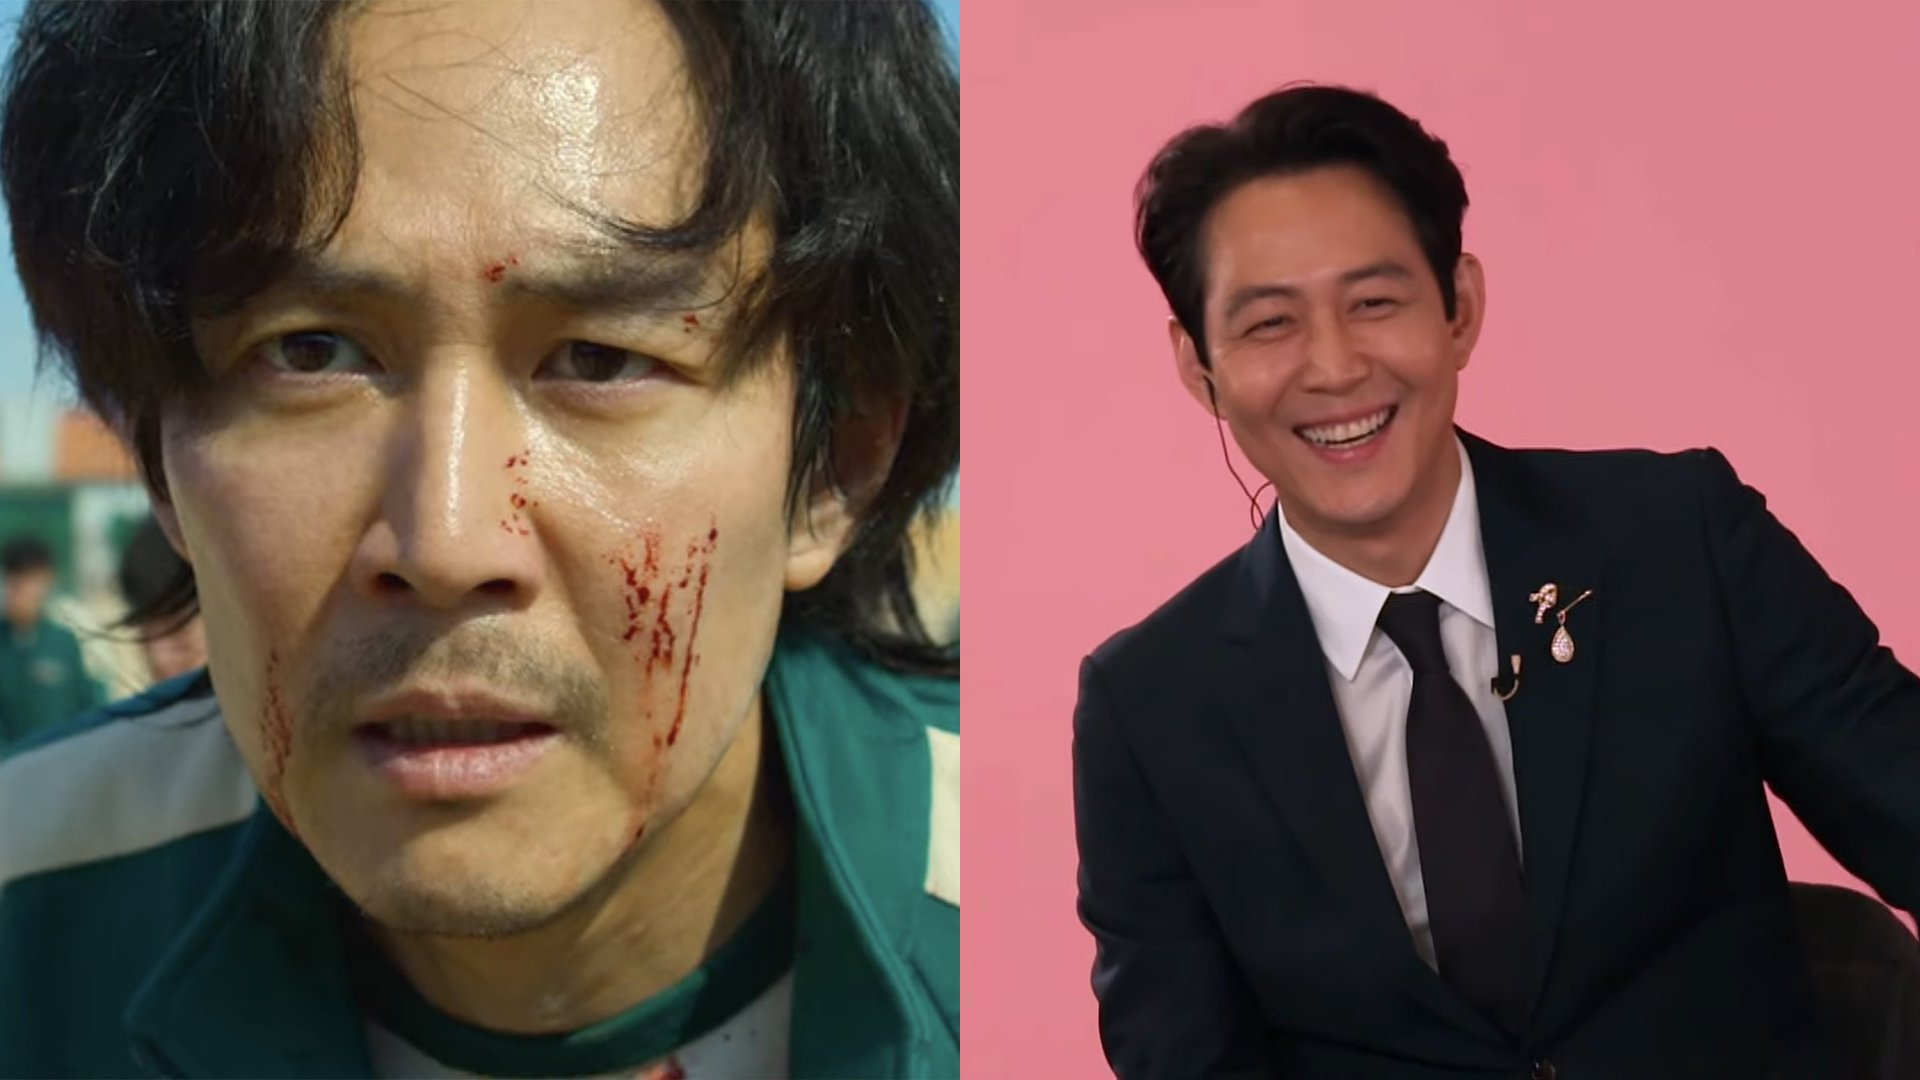 Overseas fans say they couldn't recognize Lee Jung Jae on 'The Tonight Show  Starring Jimmy Fallon' because of his clean-cut appearance | allkpop